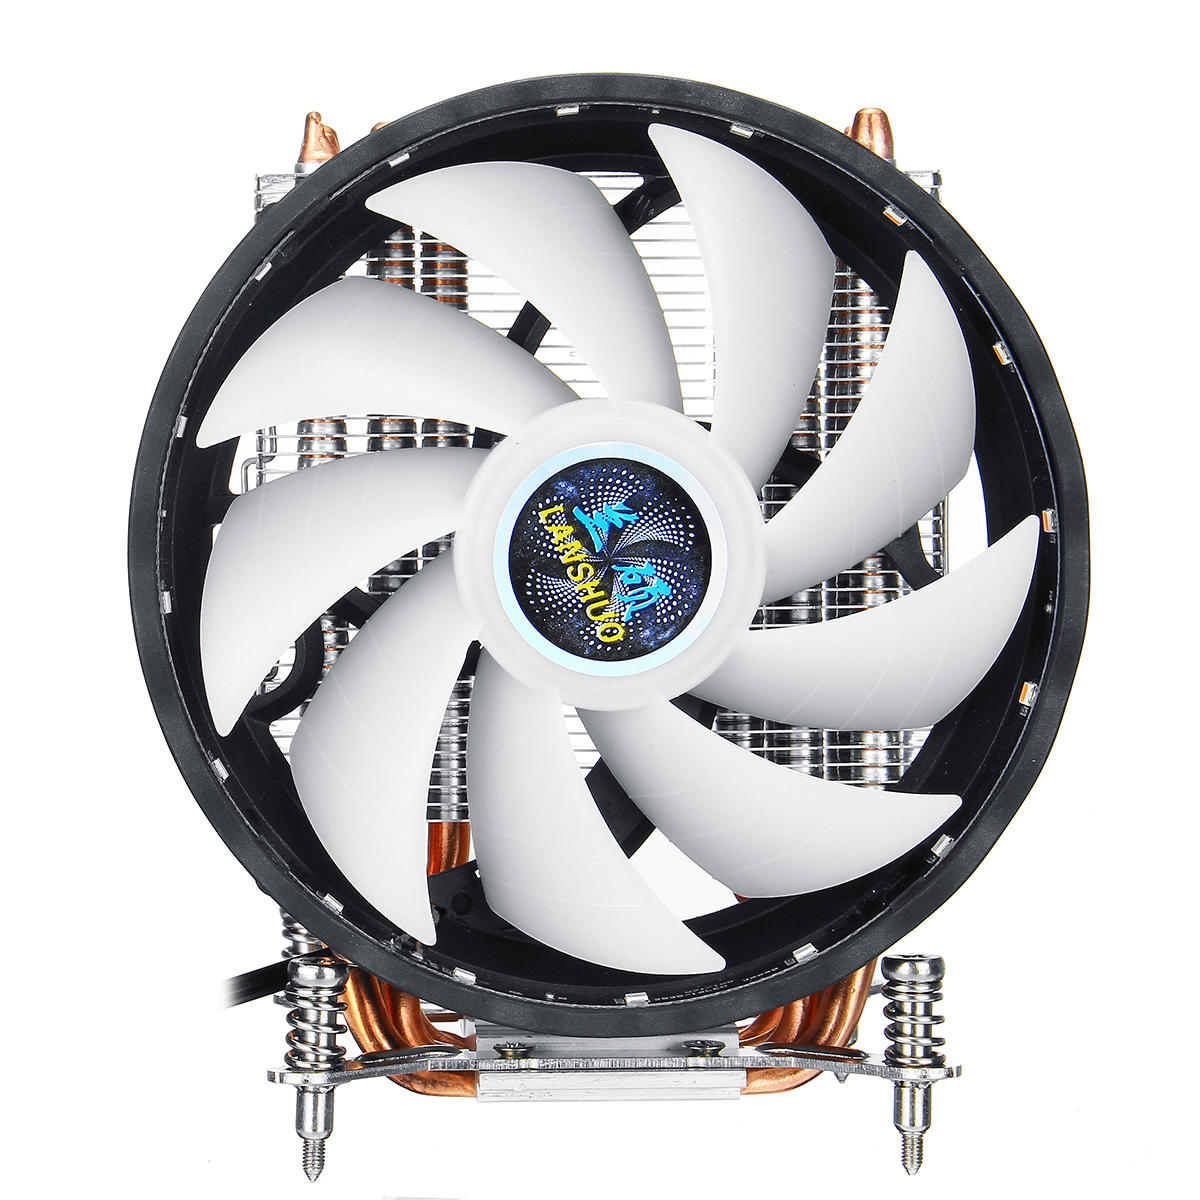 CPU Cooling Fan 12cm 6 Copper Tubes 3 Wires Single Fan Air Cooler RGB Light Fixed CPU Radiator